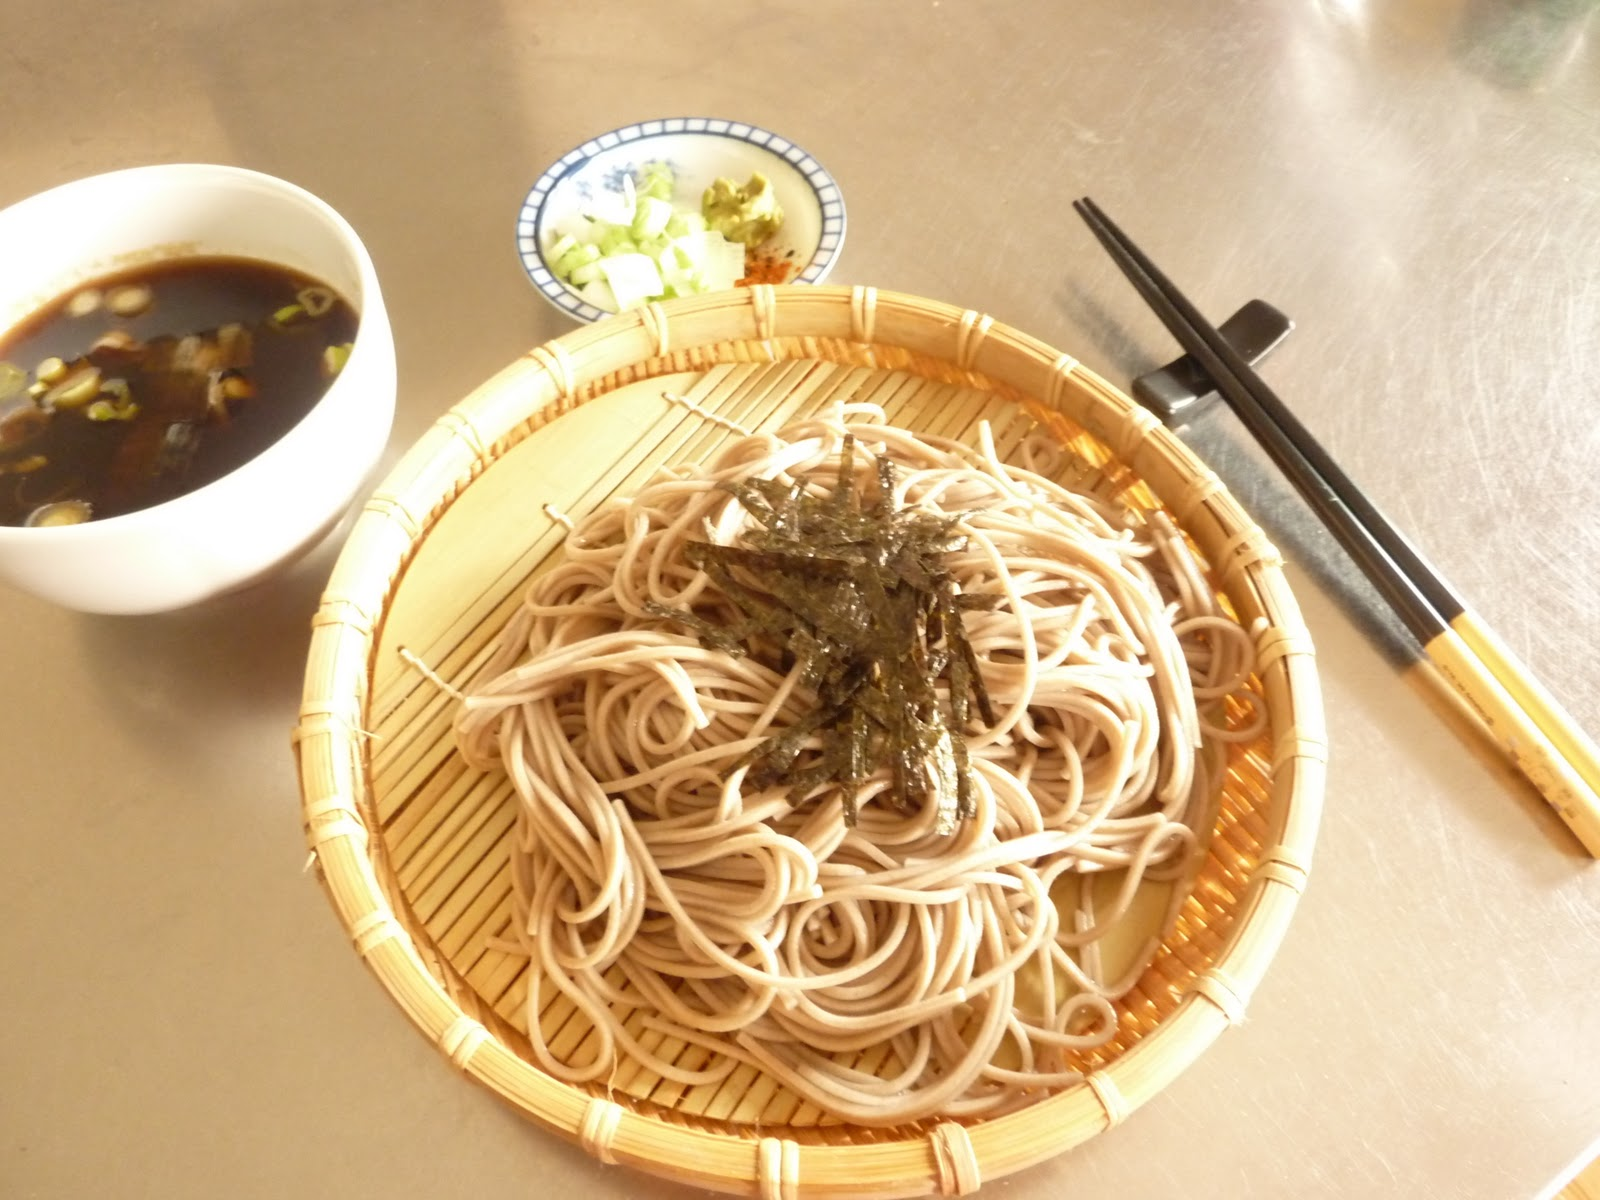 ... soba noodles, and dip them in the sauce, with a bit of wasabi and